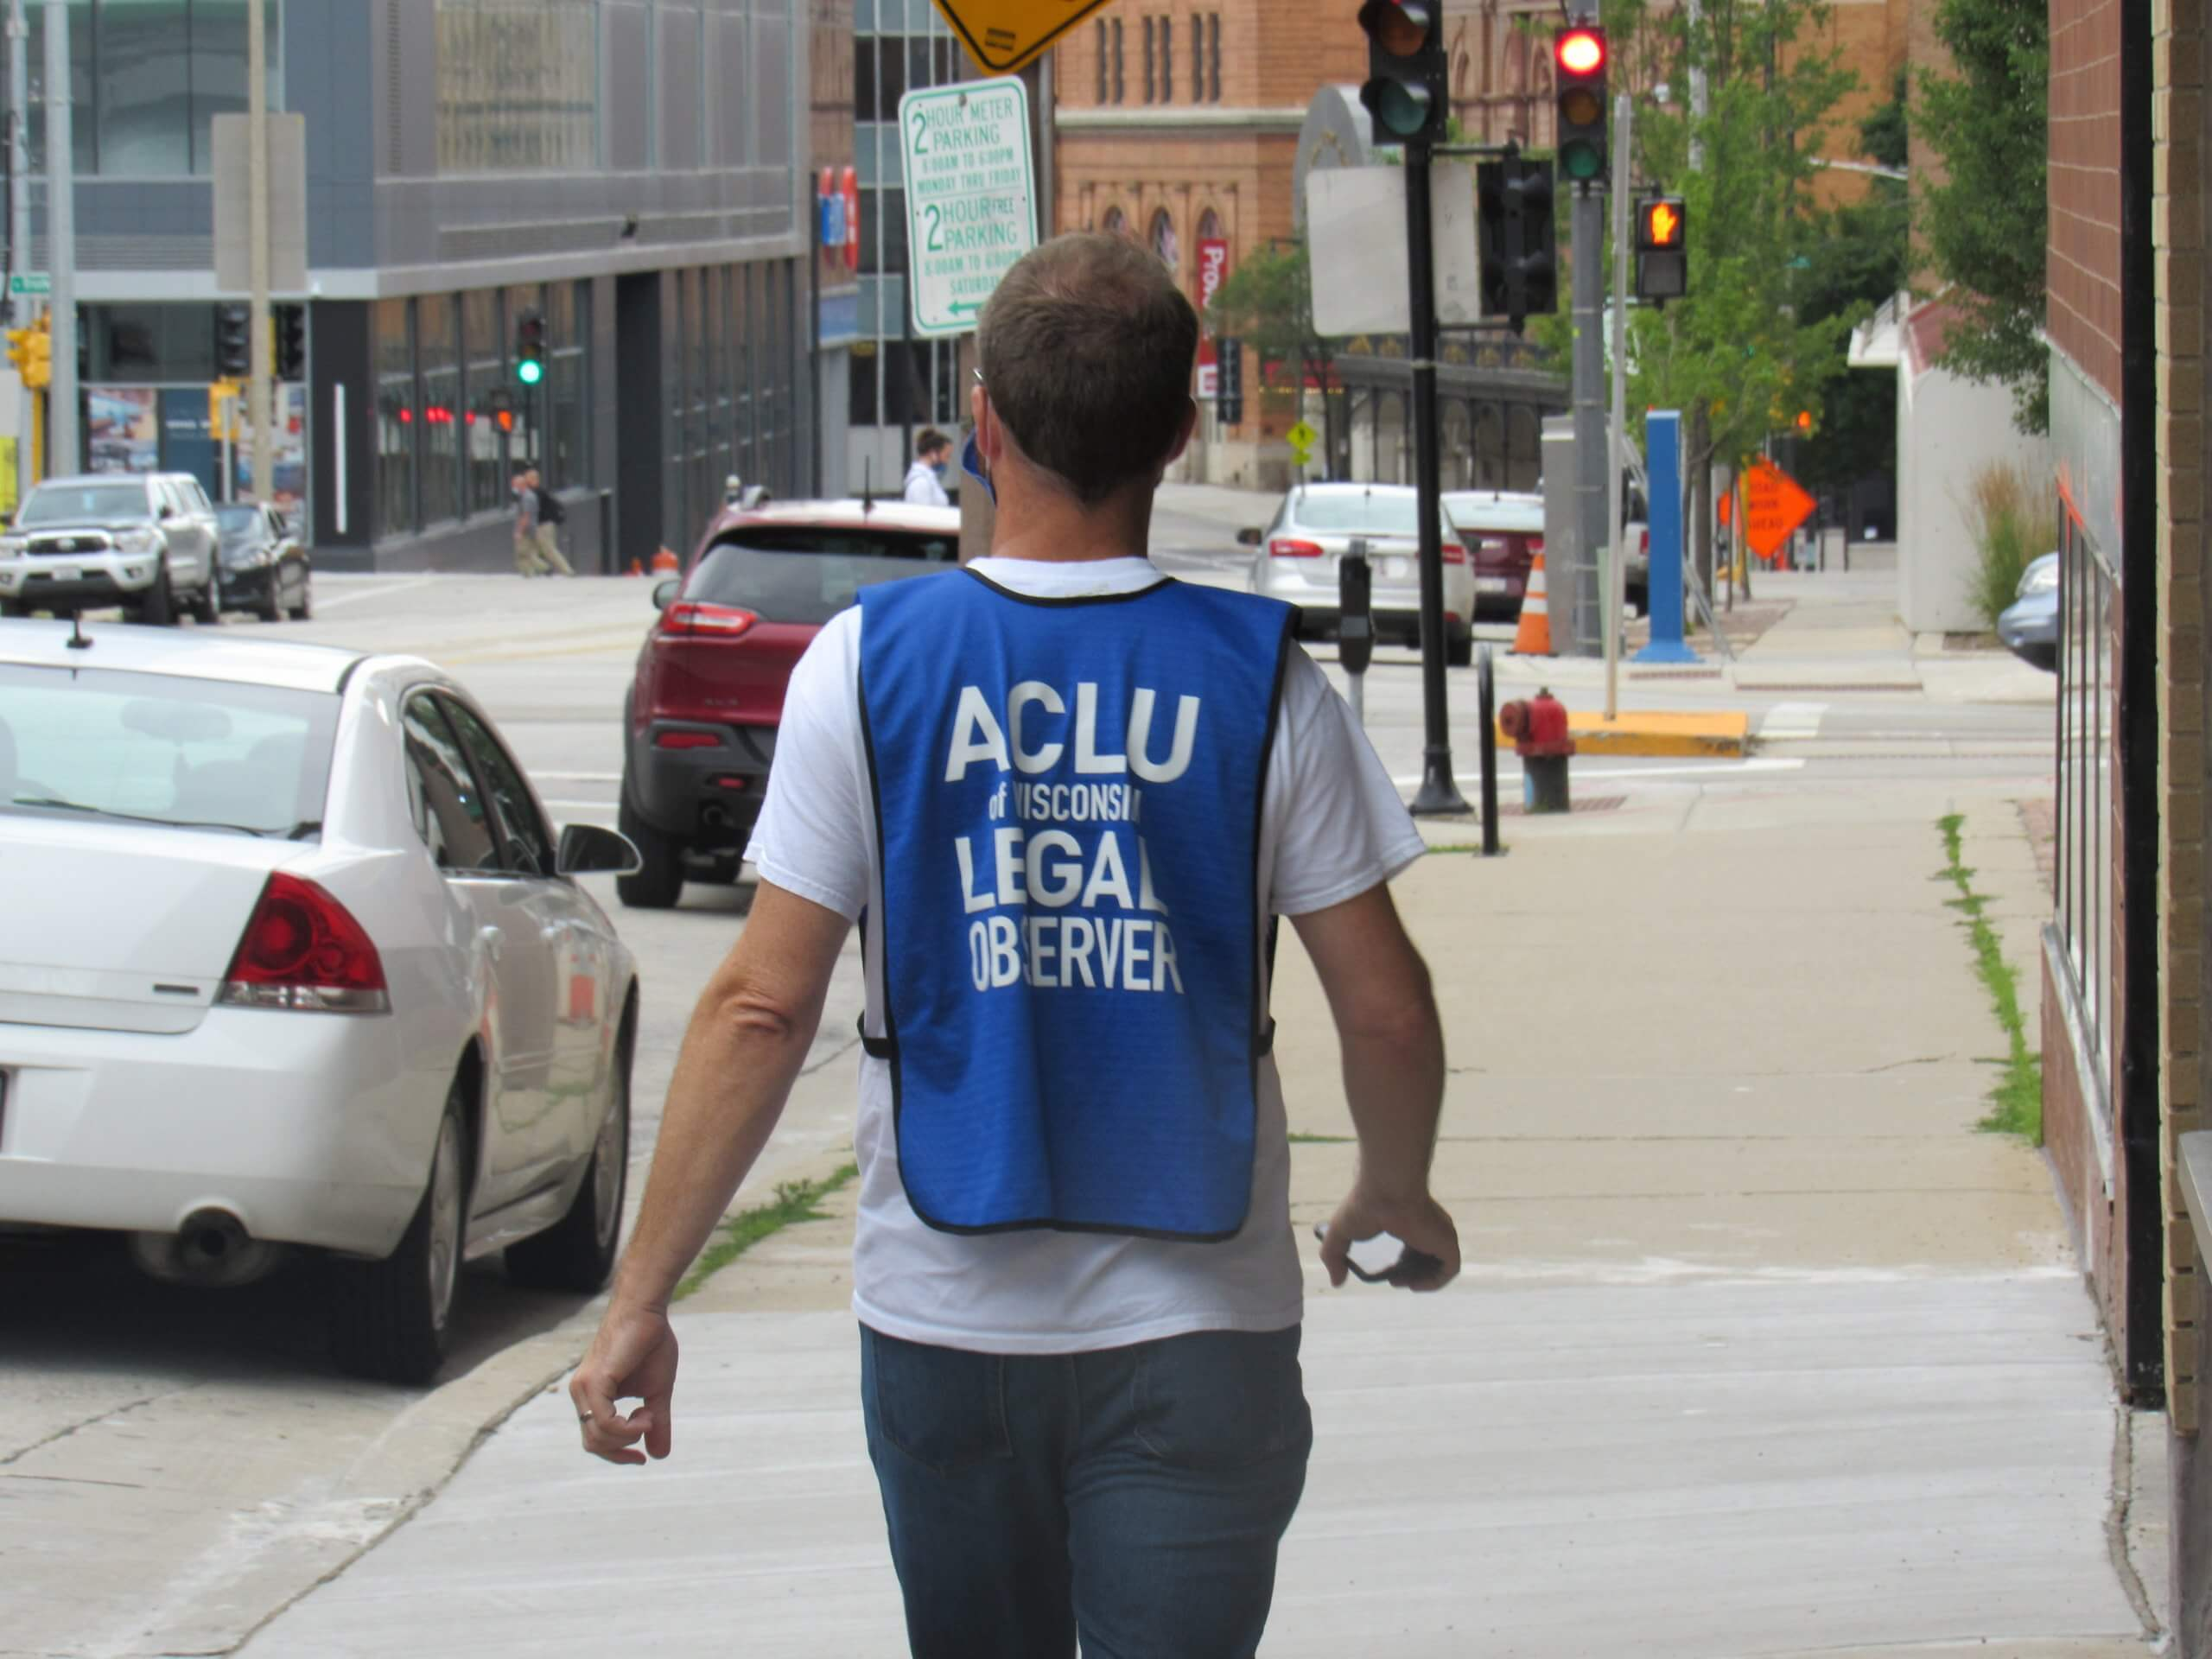 An ACLU legal observer walks and observes the march. (Photo by Isiah Holmes)